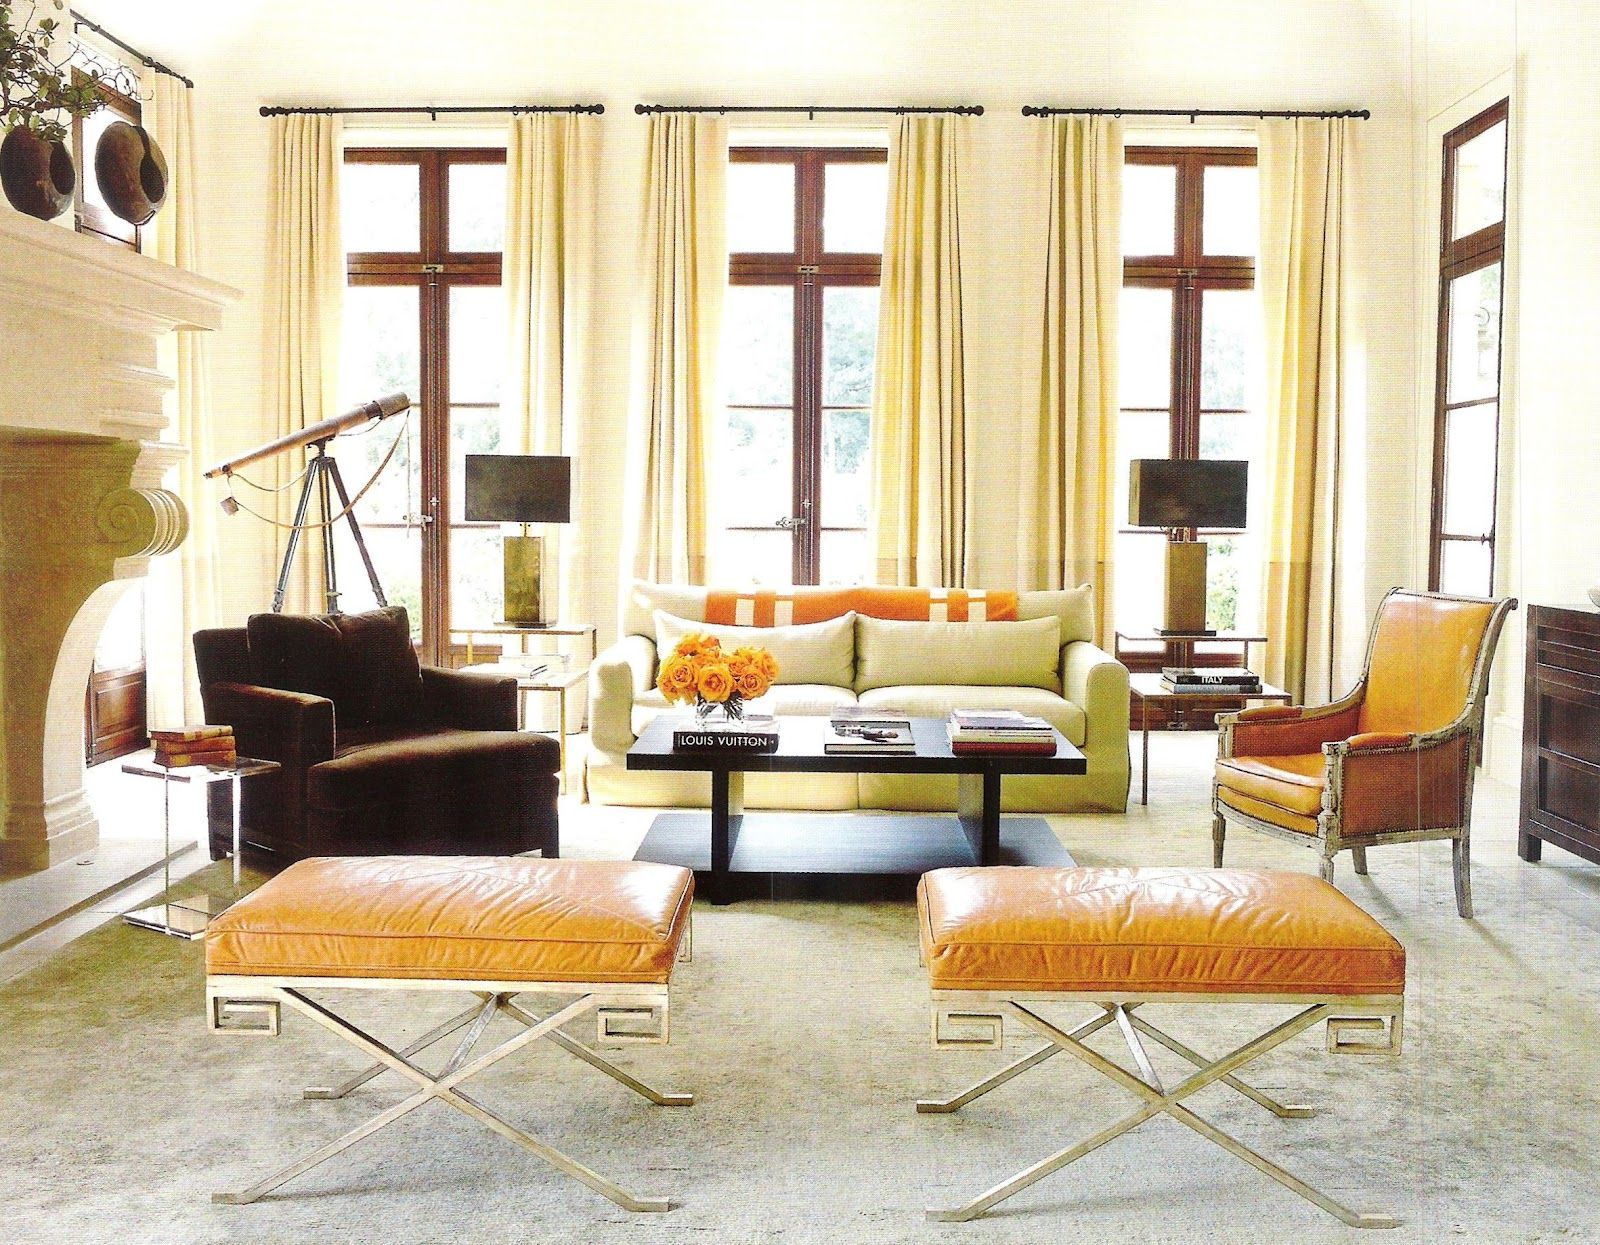 Hermes Living Room Interior Design By Suzanne Kasler Detailing Thierry Francois John Oetgen And William T Architecture